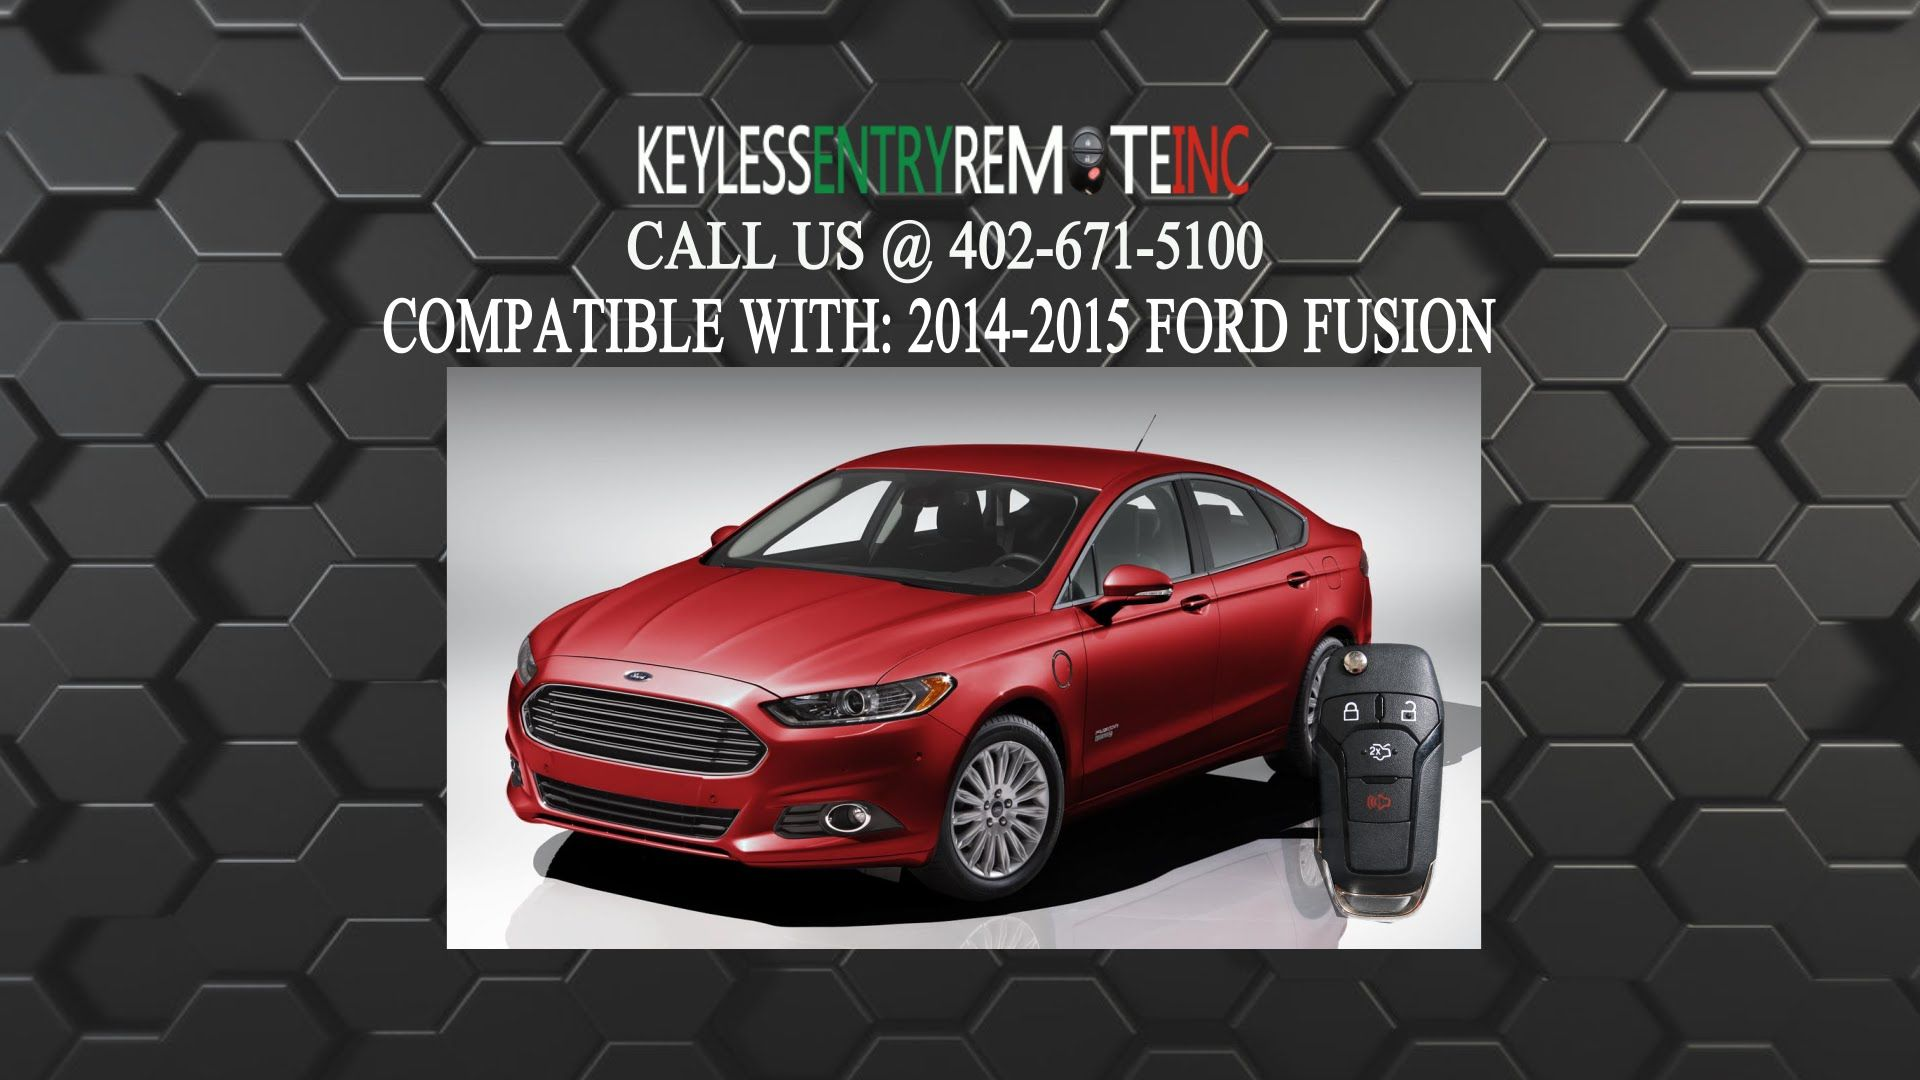 How To Replace A Ford Fusion Key Fob Battery 2017 2016